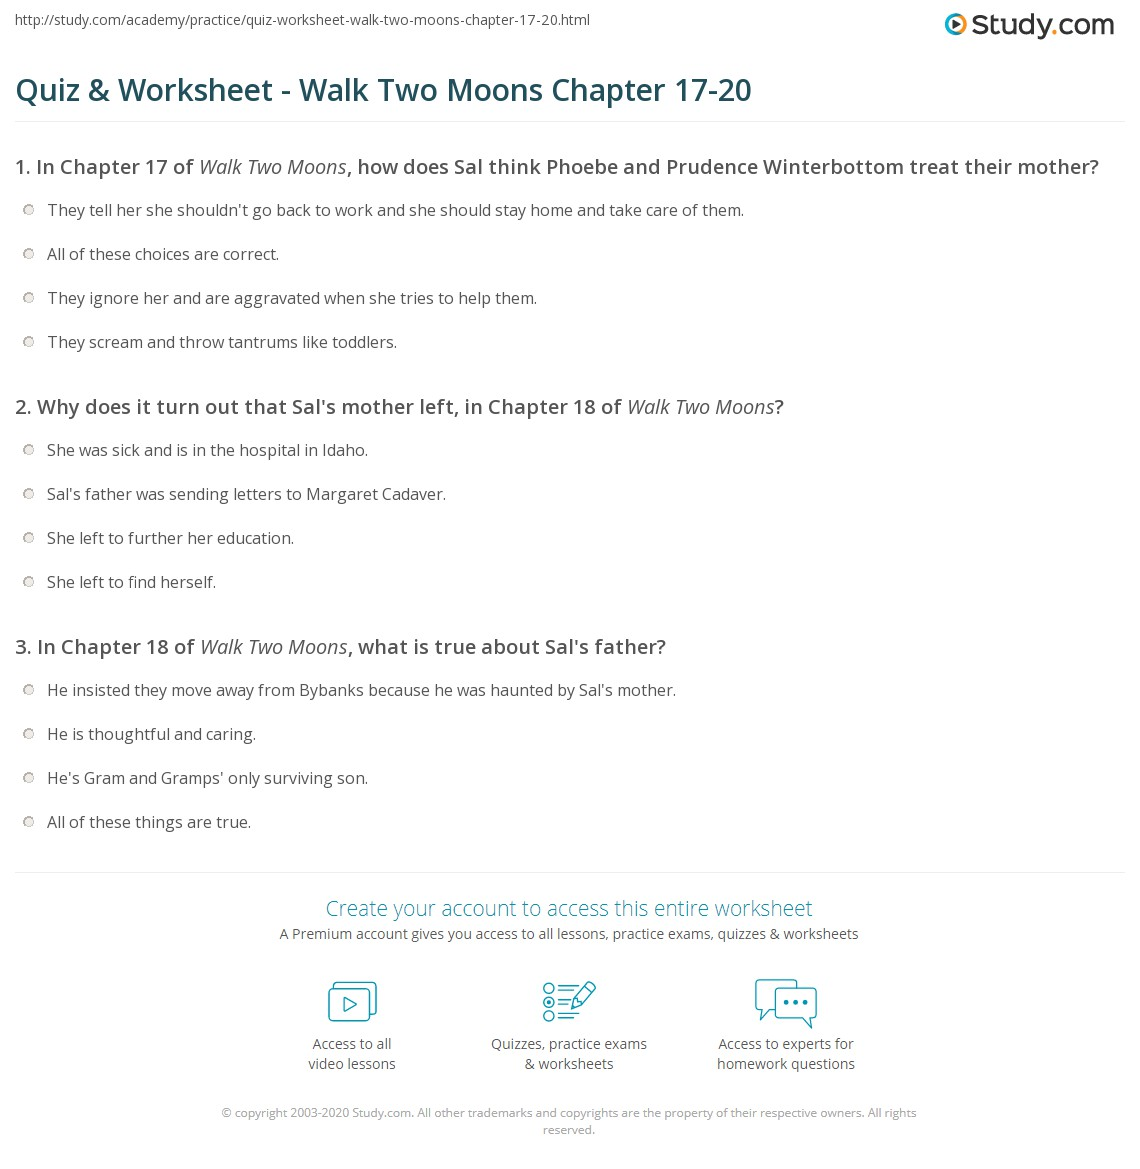 Worksheets Walk Two Moons Worksheets quiz worksheet walk two moons chapter 17 20 study com print summary chapters worksheet